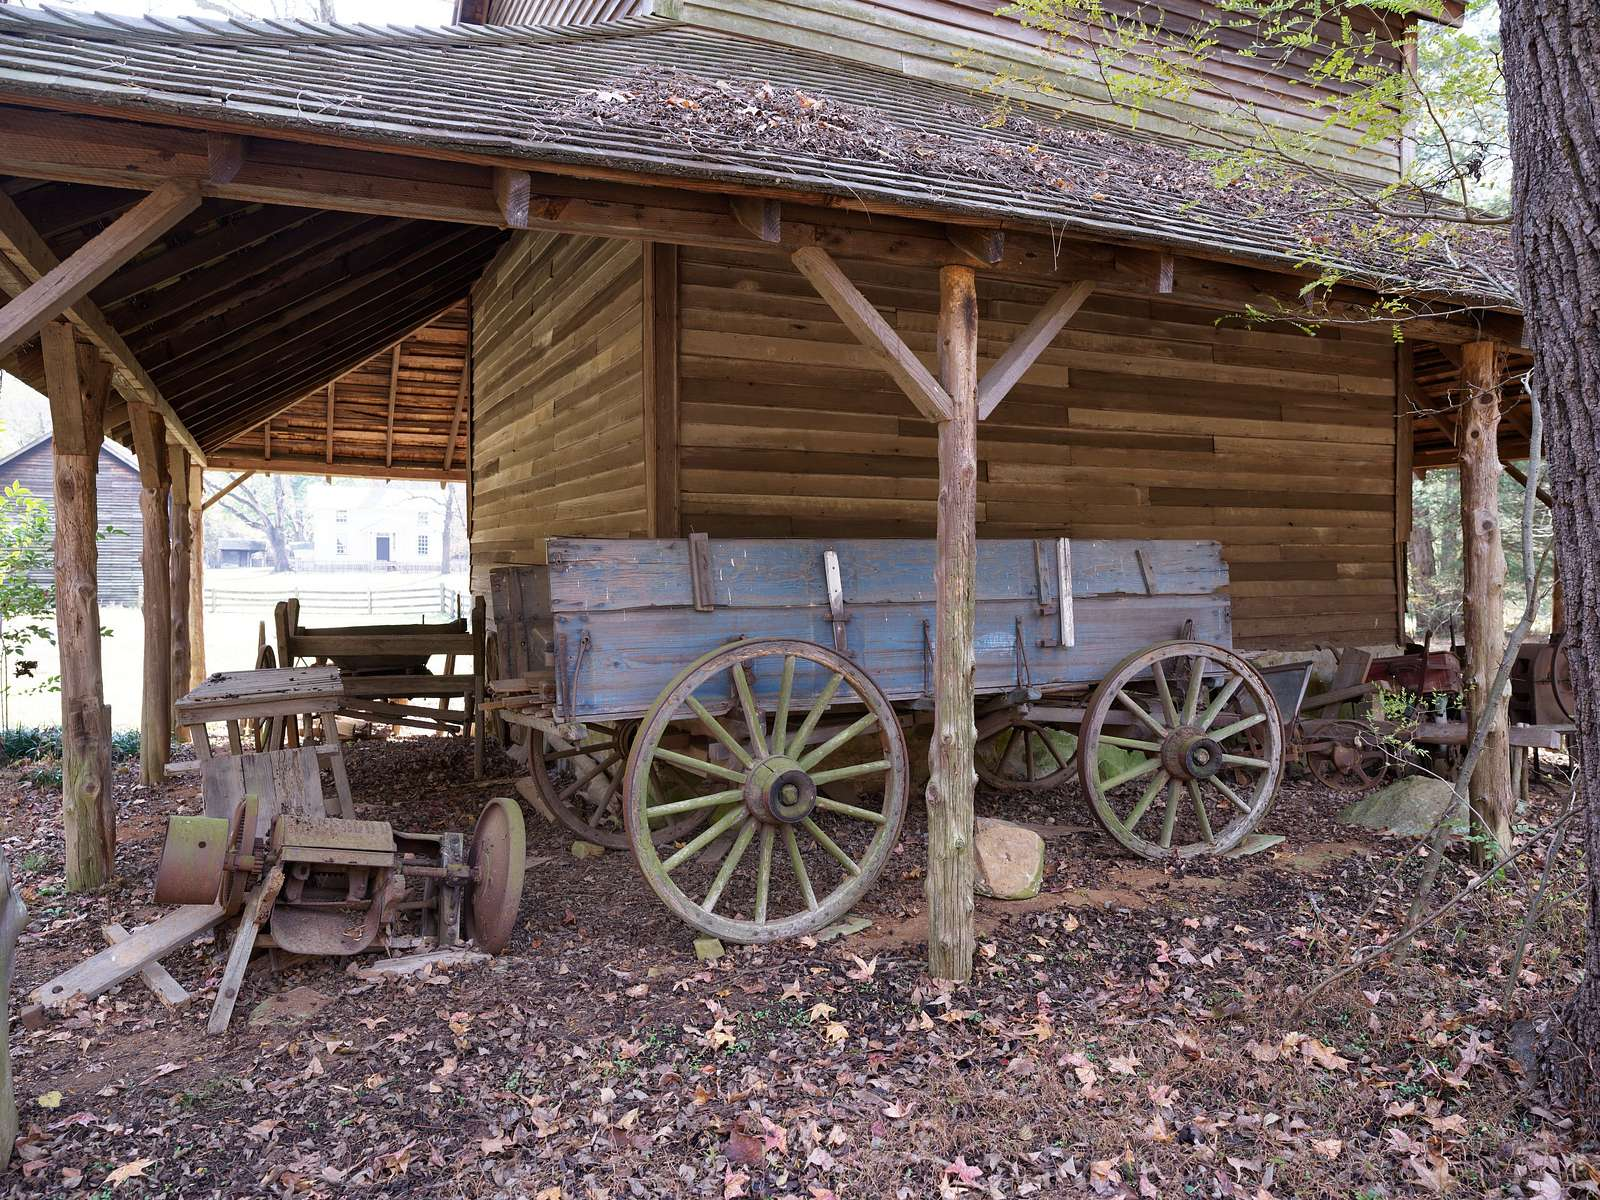 Tobacco barn at the Duke Homestead state historic site on the outskirts of Durham, North Carolina